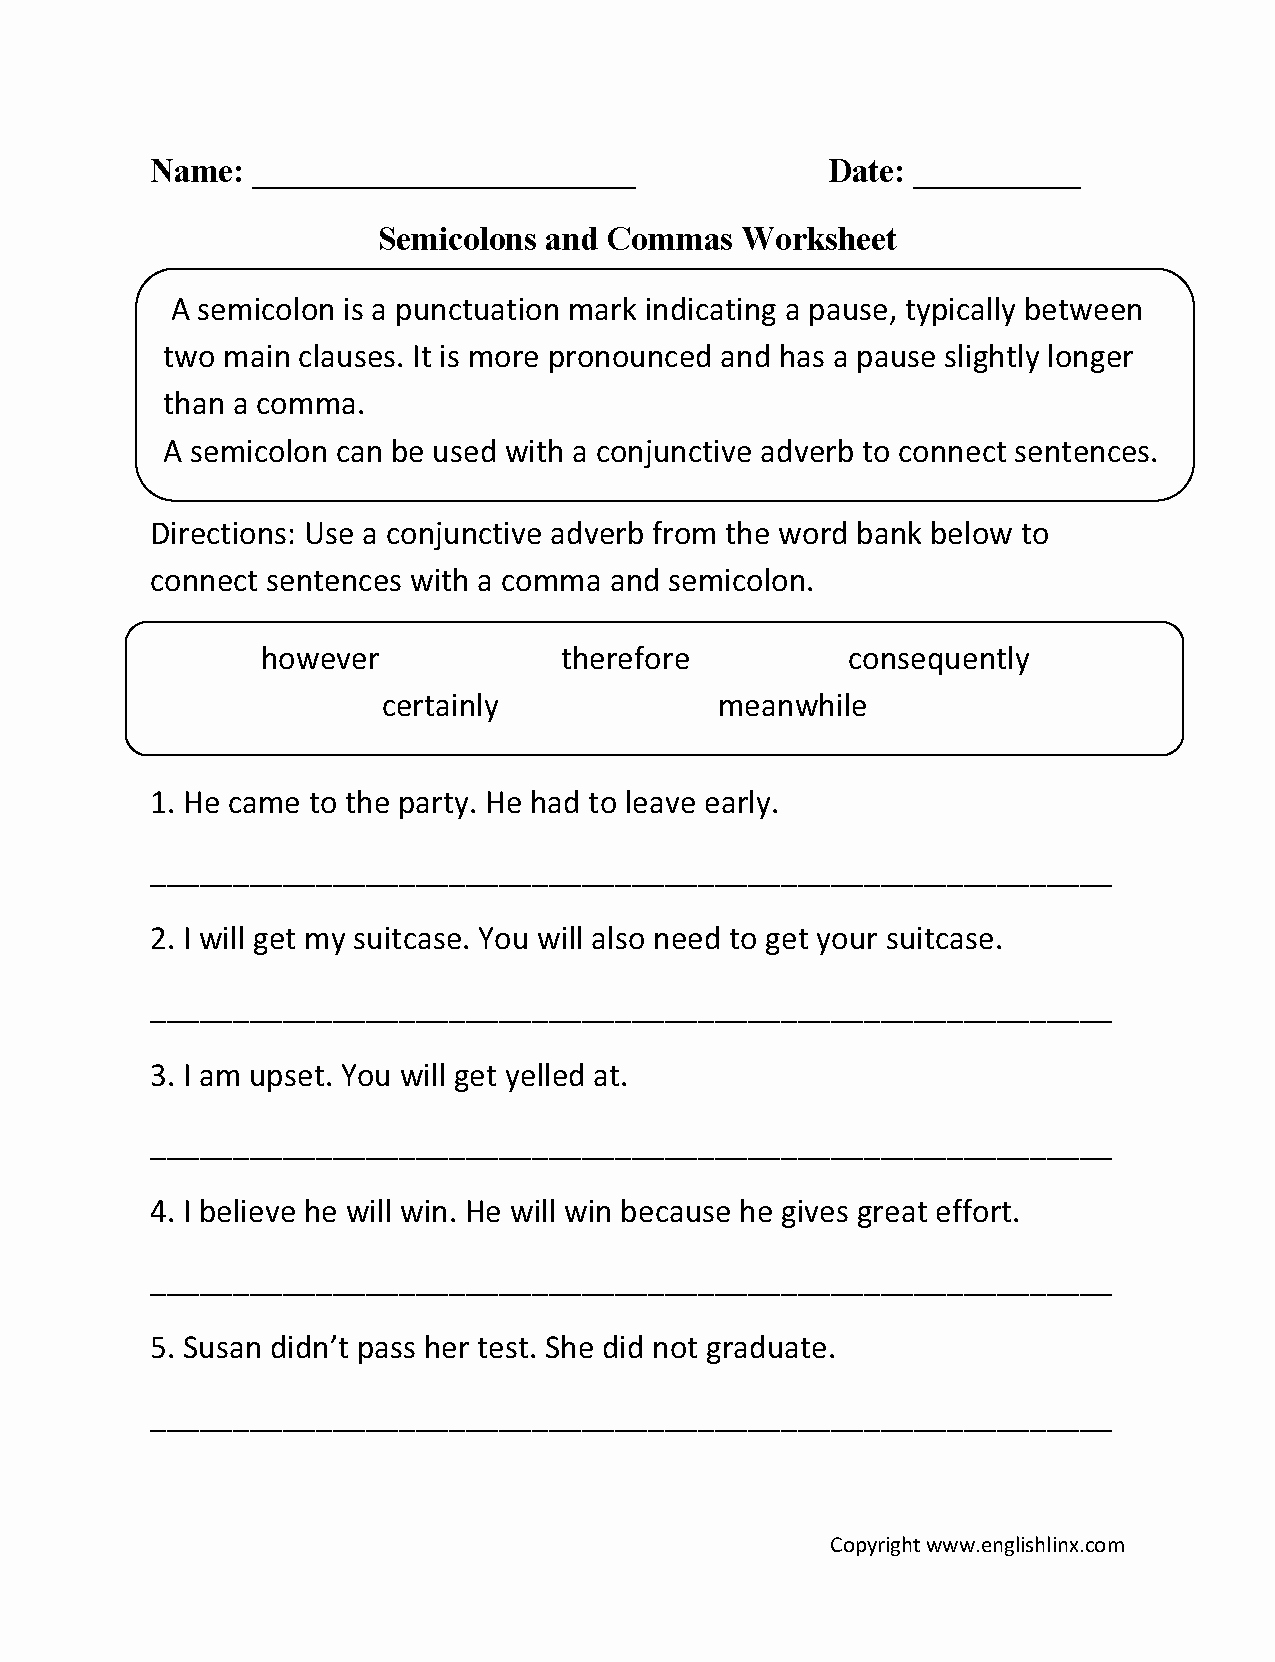 Semicolons and Colons Worksheet New Semicolon Worksheets Englishlinx Board